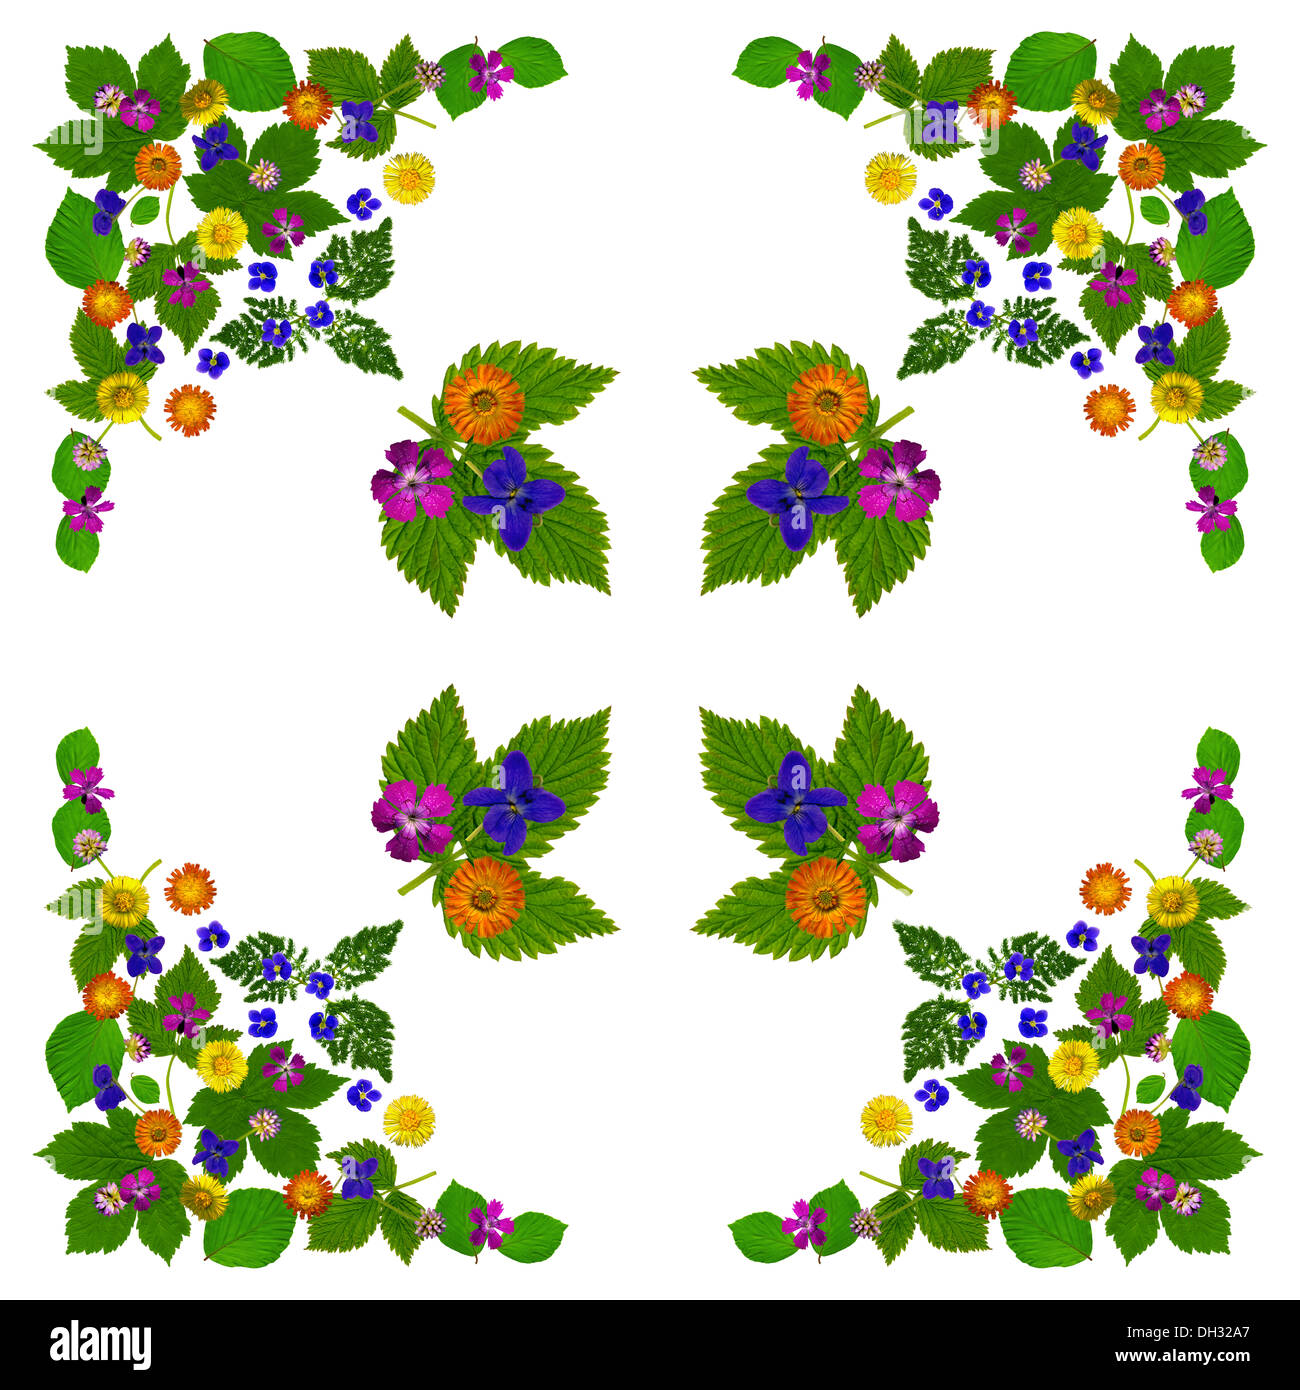 Napkin with colorful flowers - Stock Image